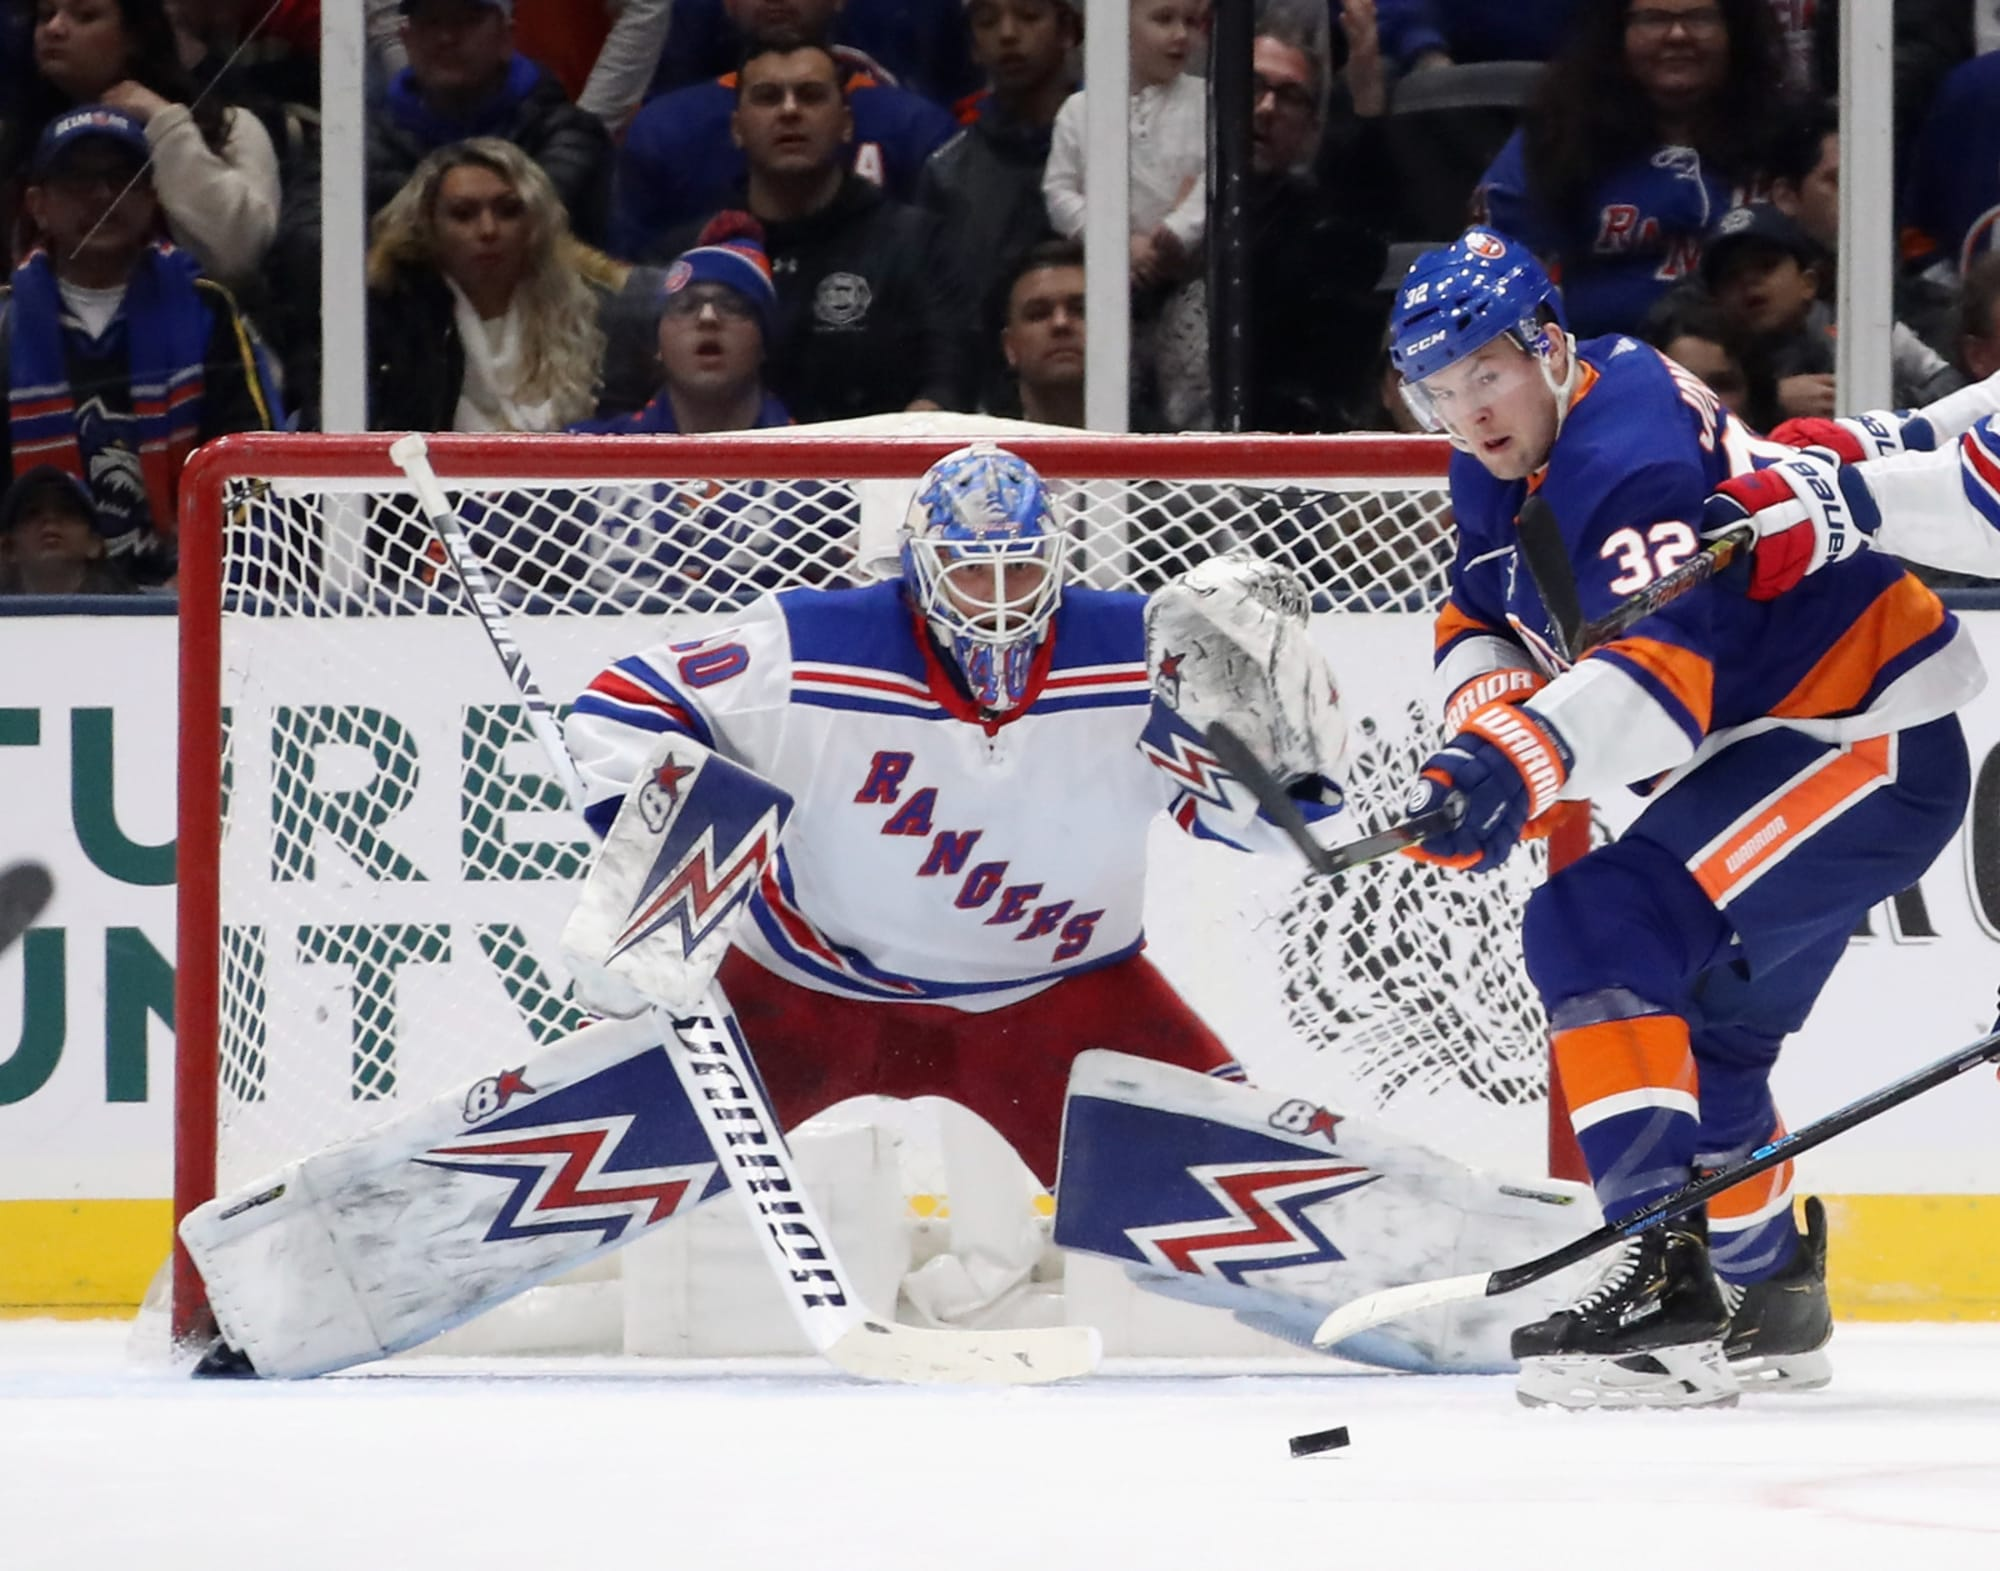 Islanders Killer Could Be Traded To Toronto Maple Leafs